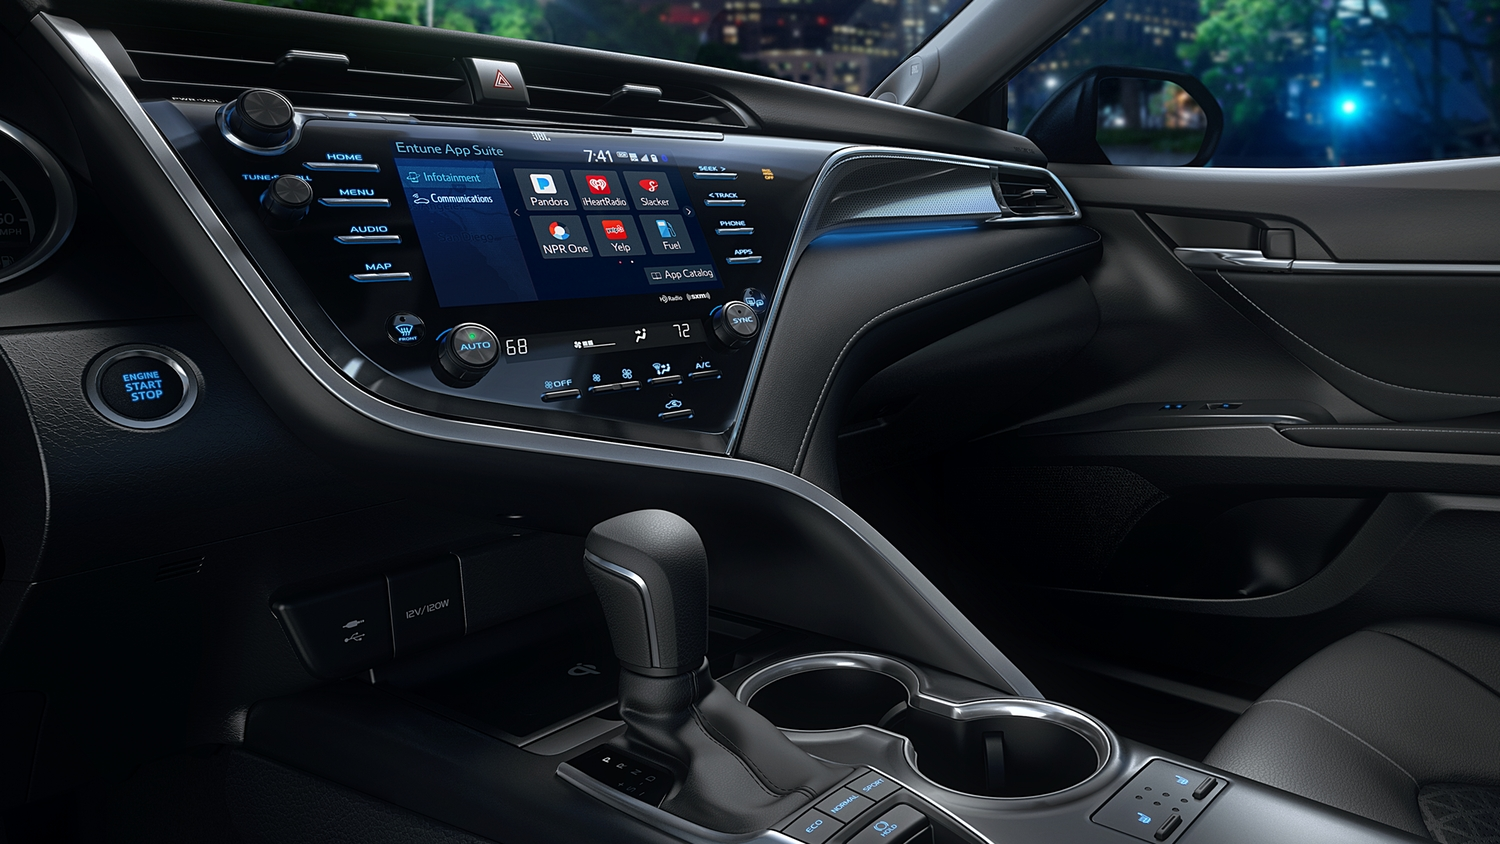 Cabin of the 2019 Camry